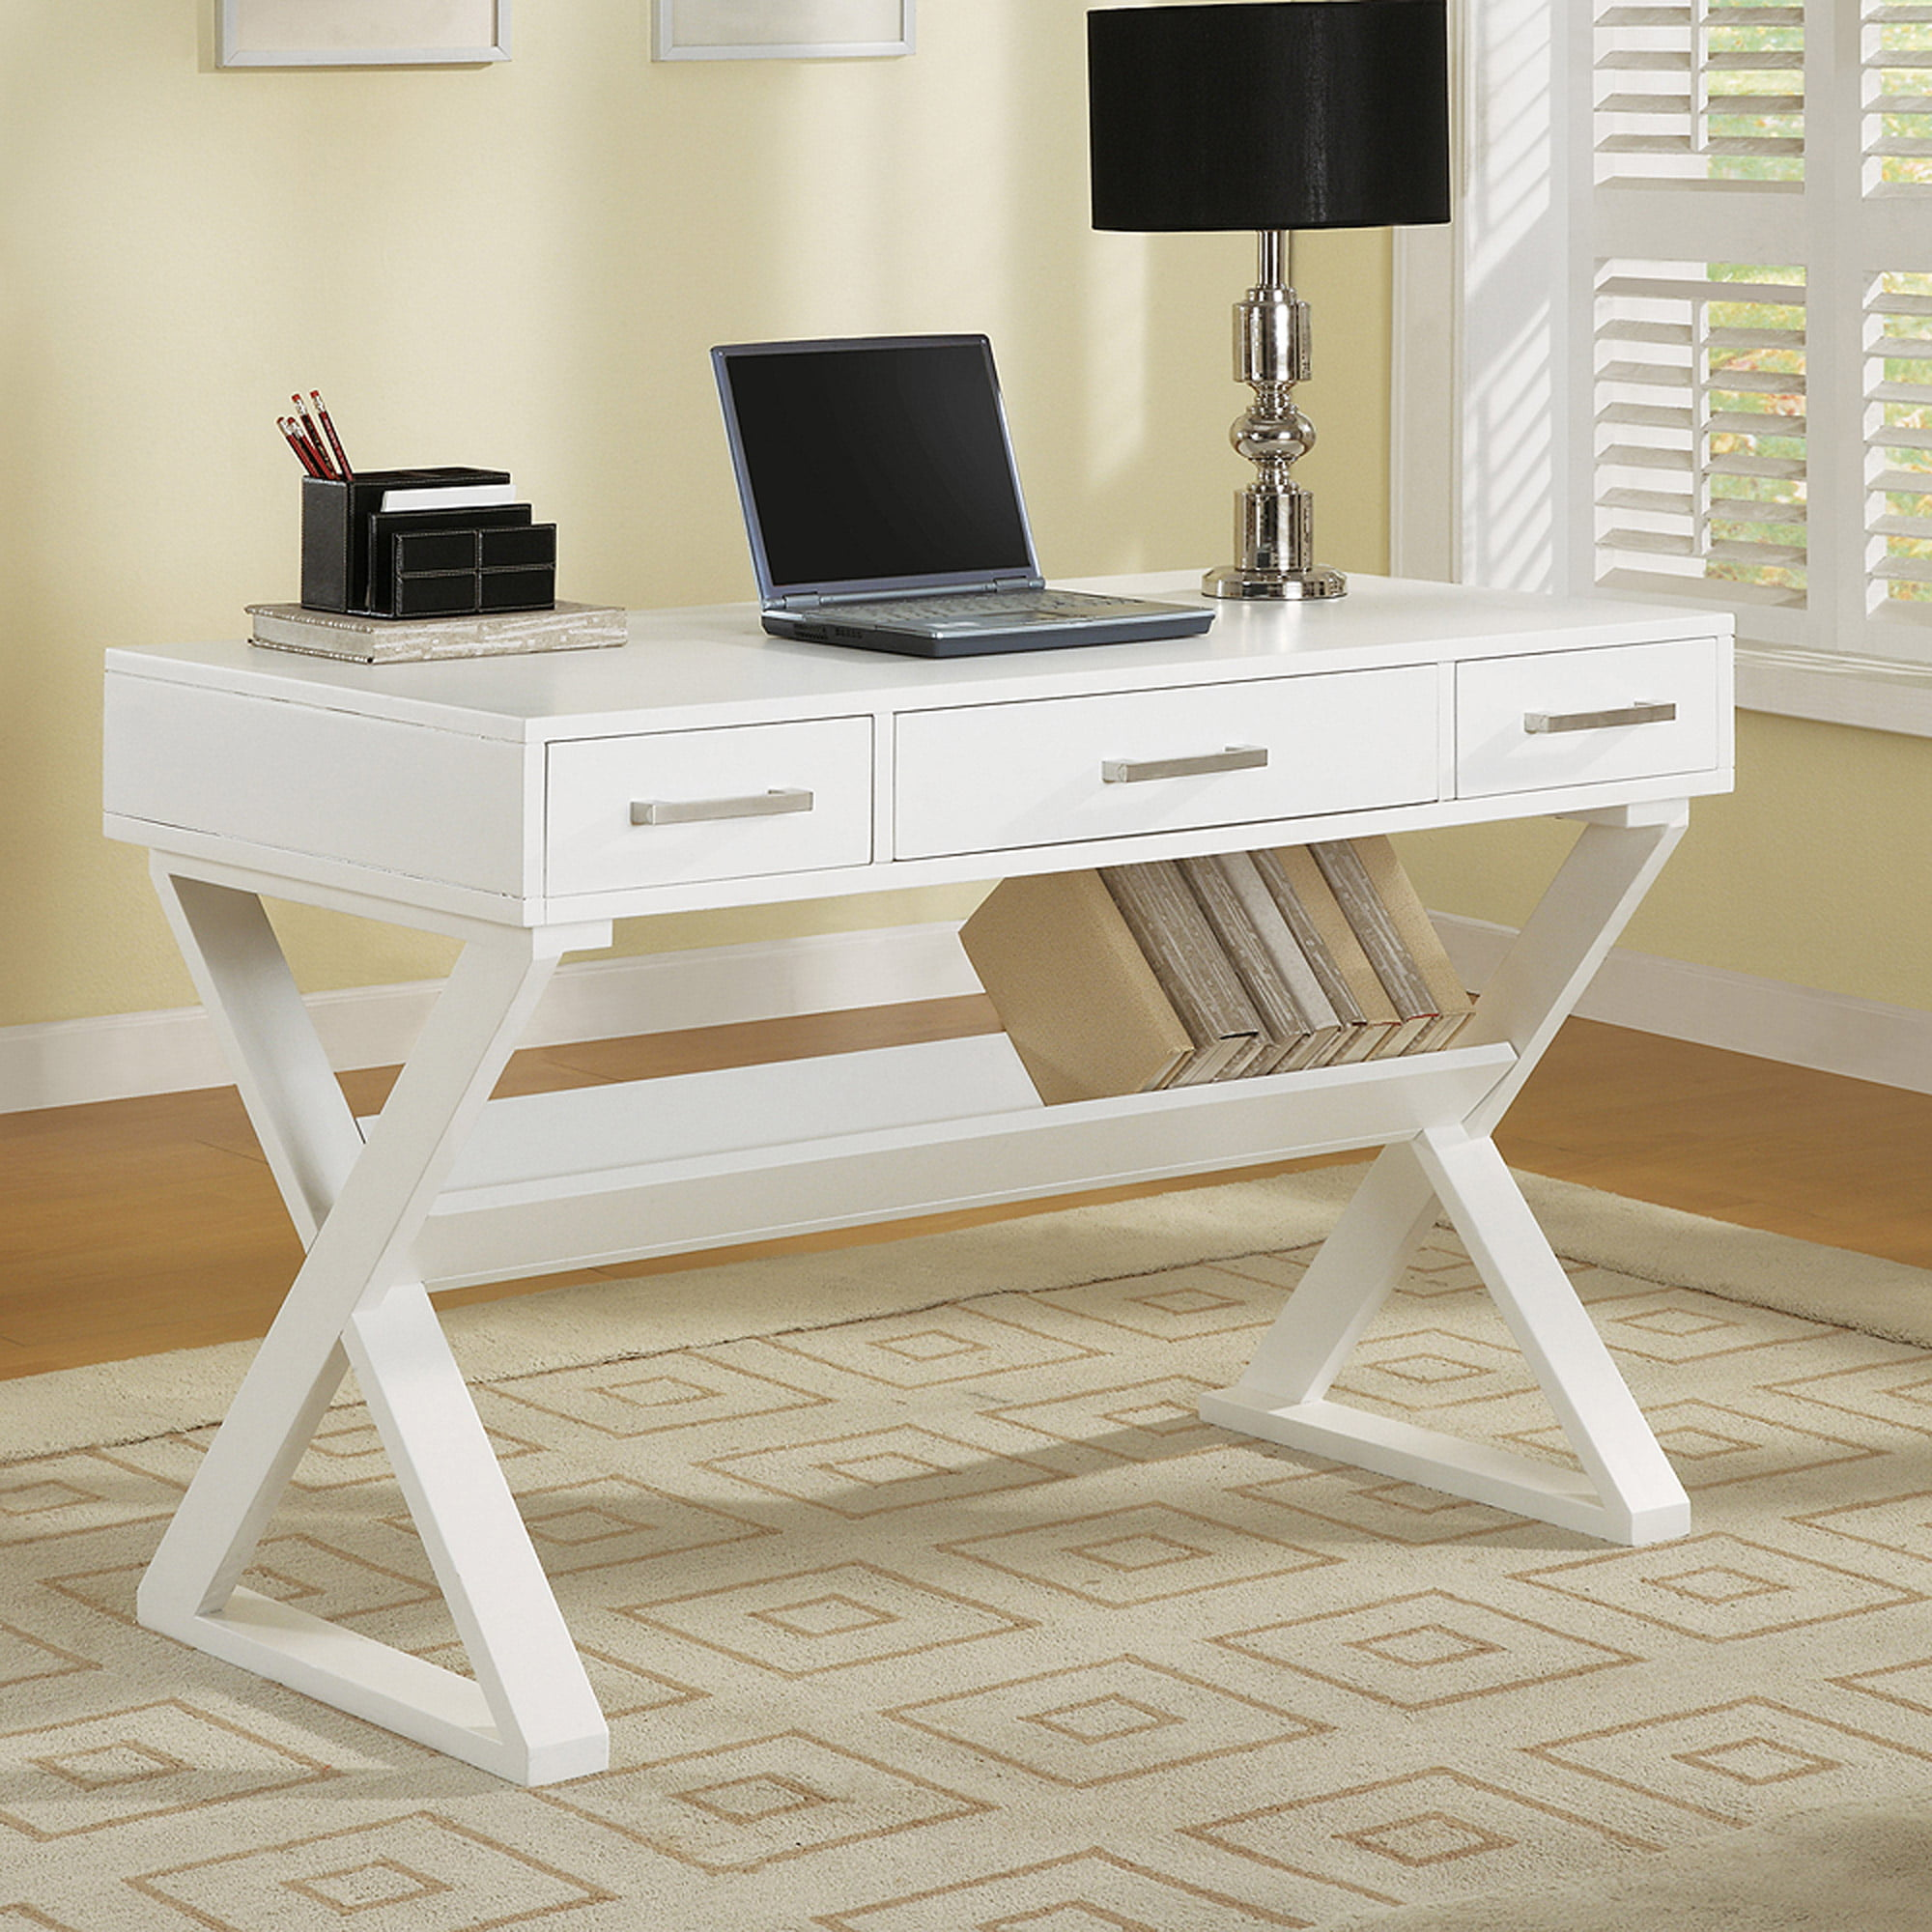 office desk walmart. Office Desk Walmart A